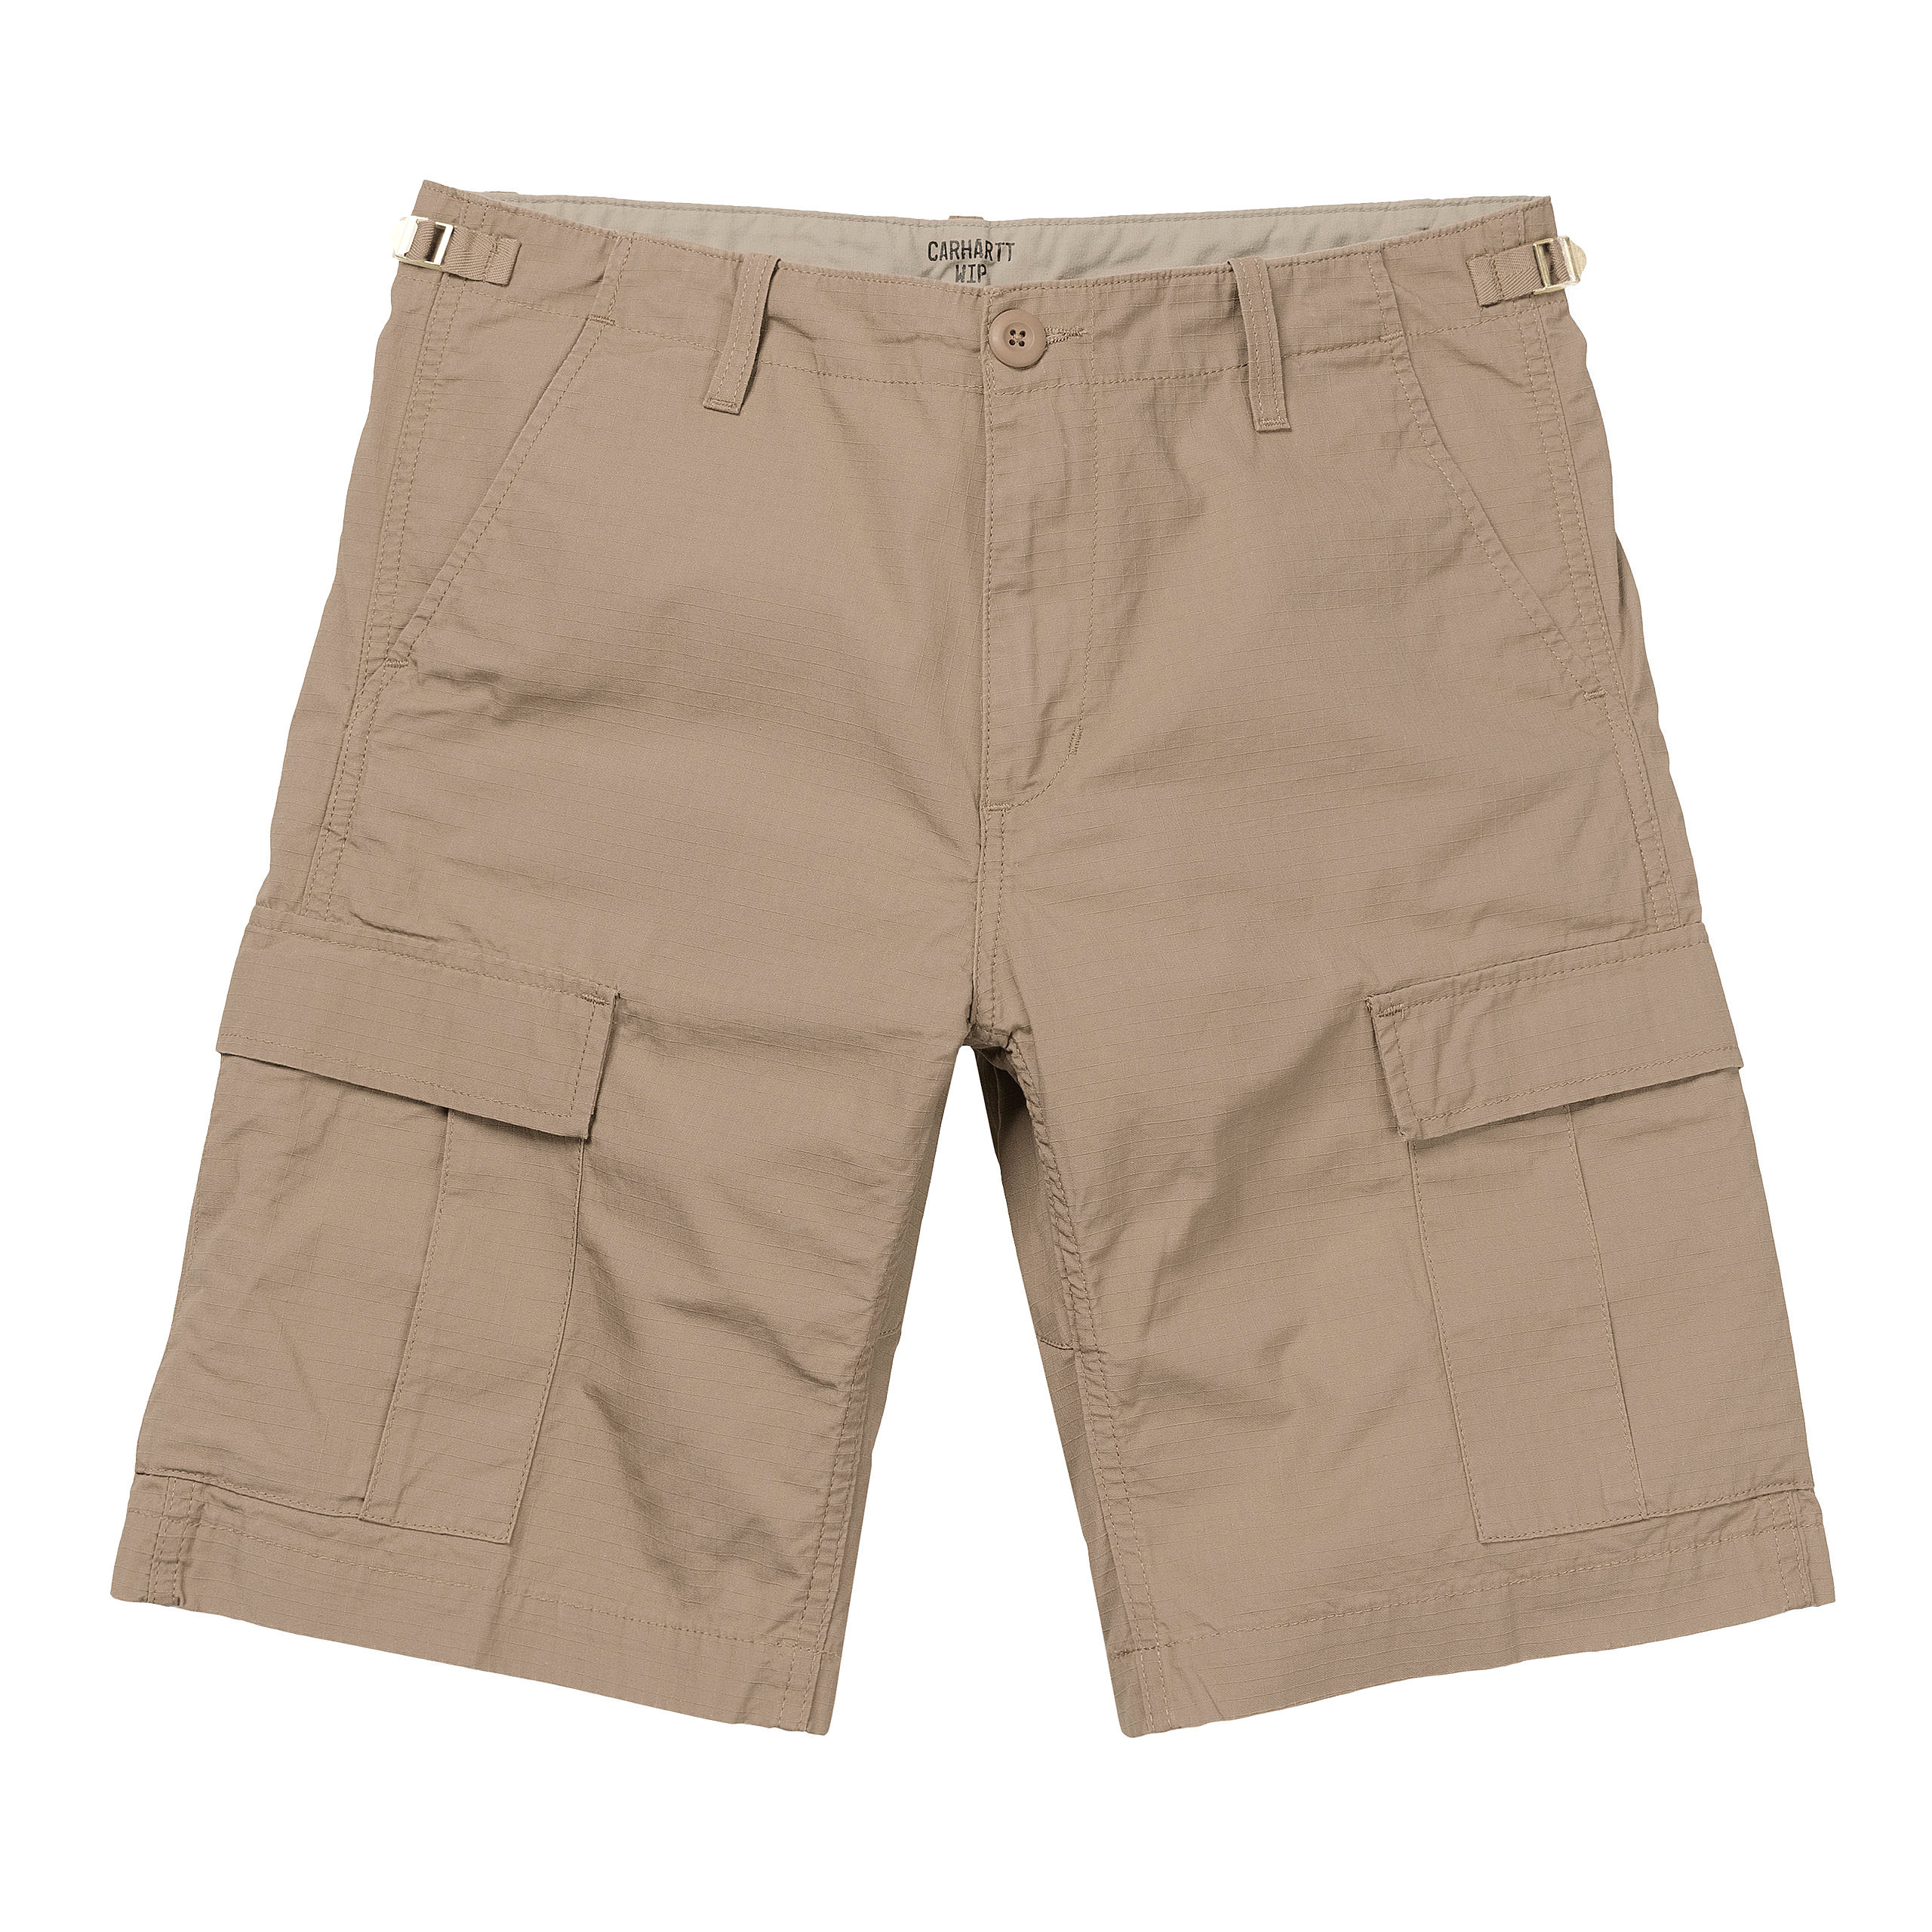 Carhartt WIP - AVIATION SHORT - Leather Rinsed